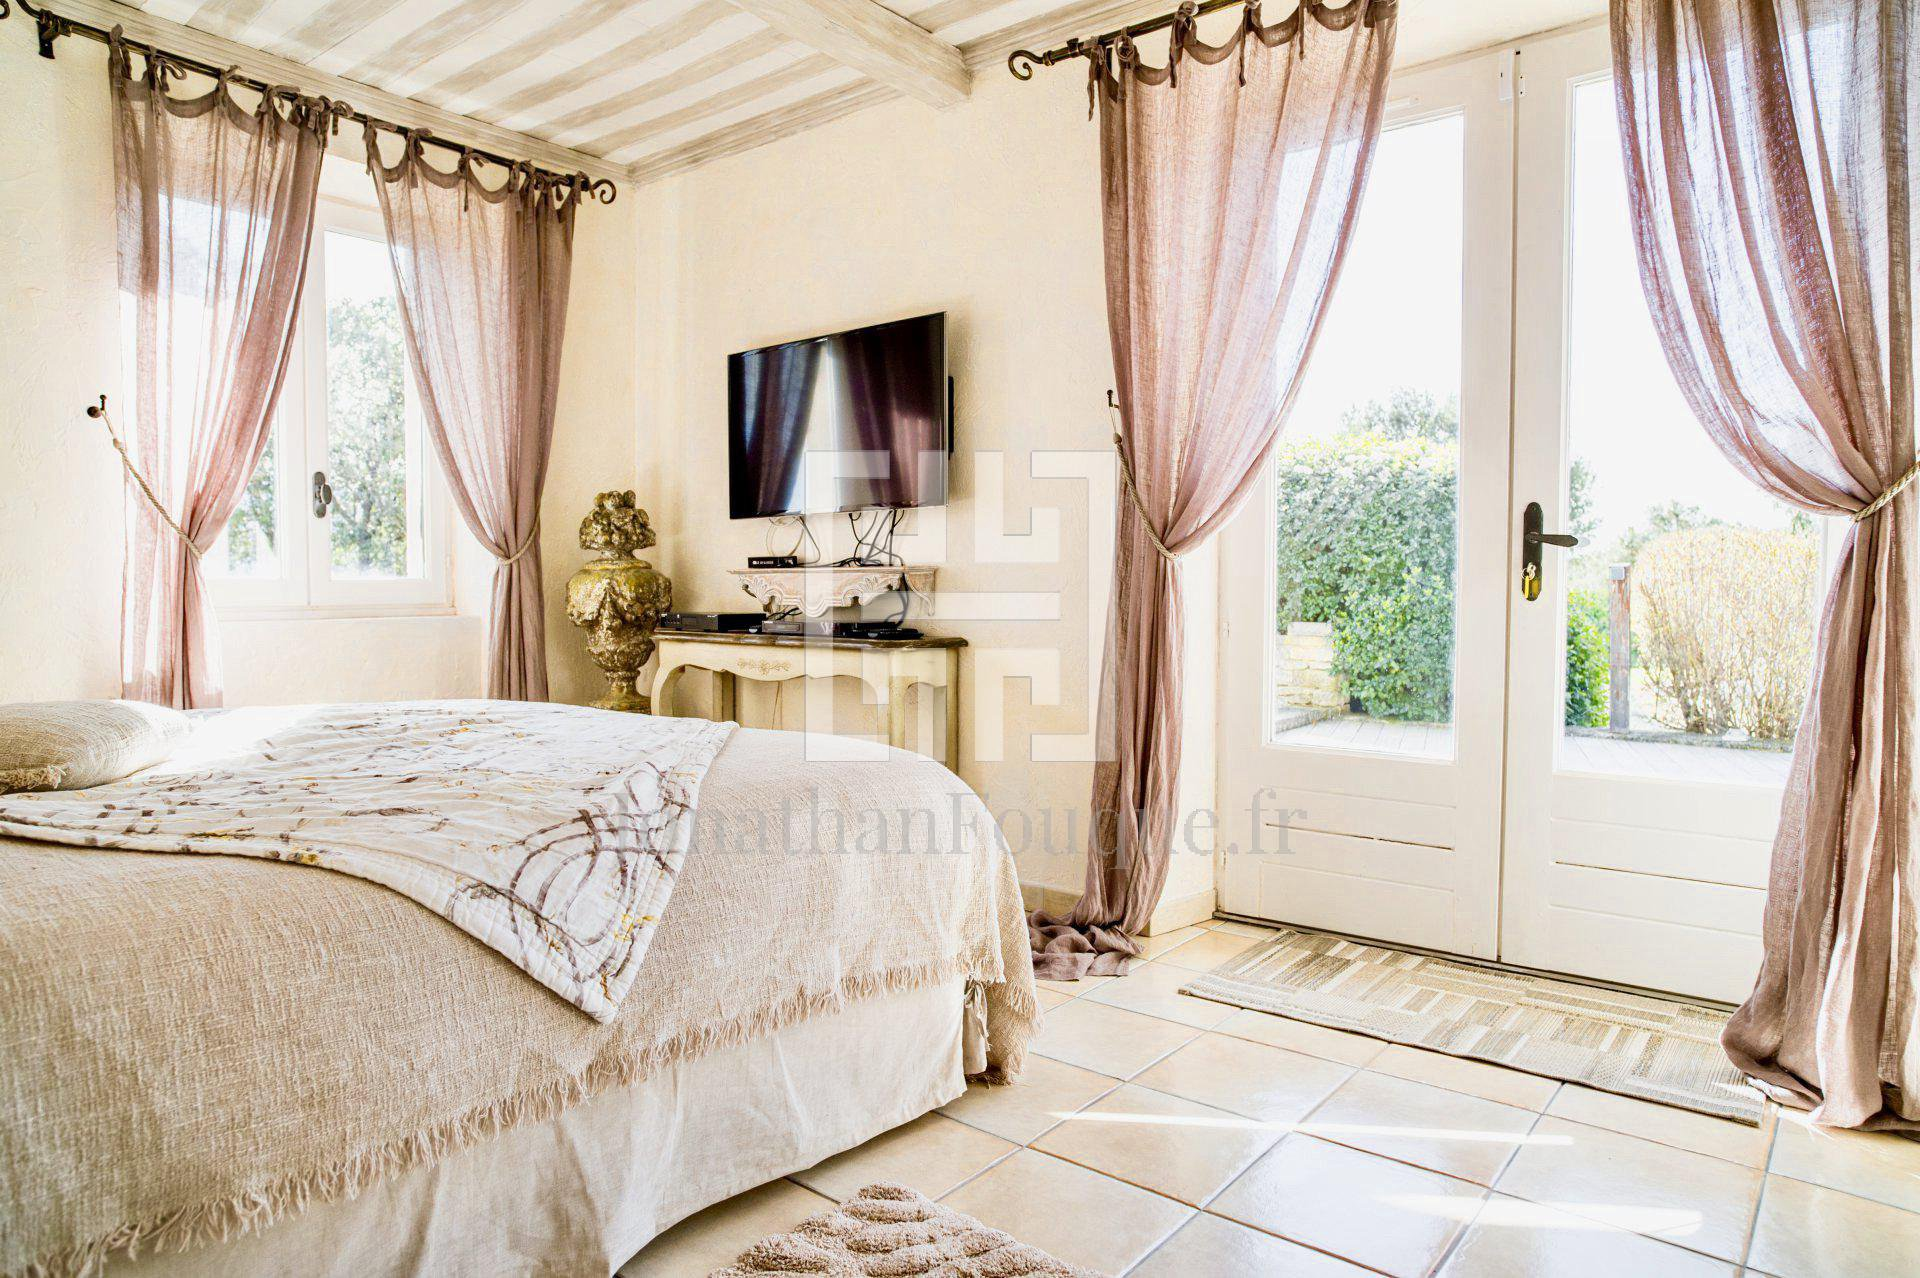 Villa **** 5 bedrooms in Luberon